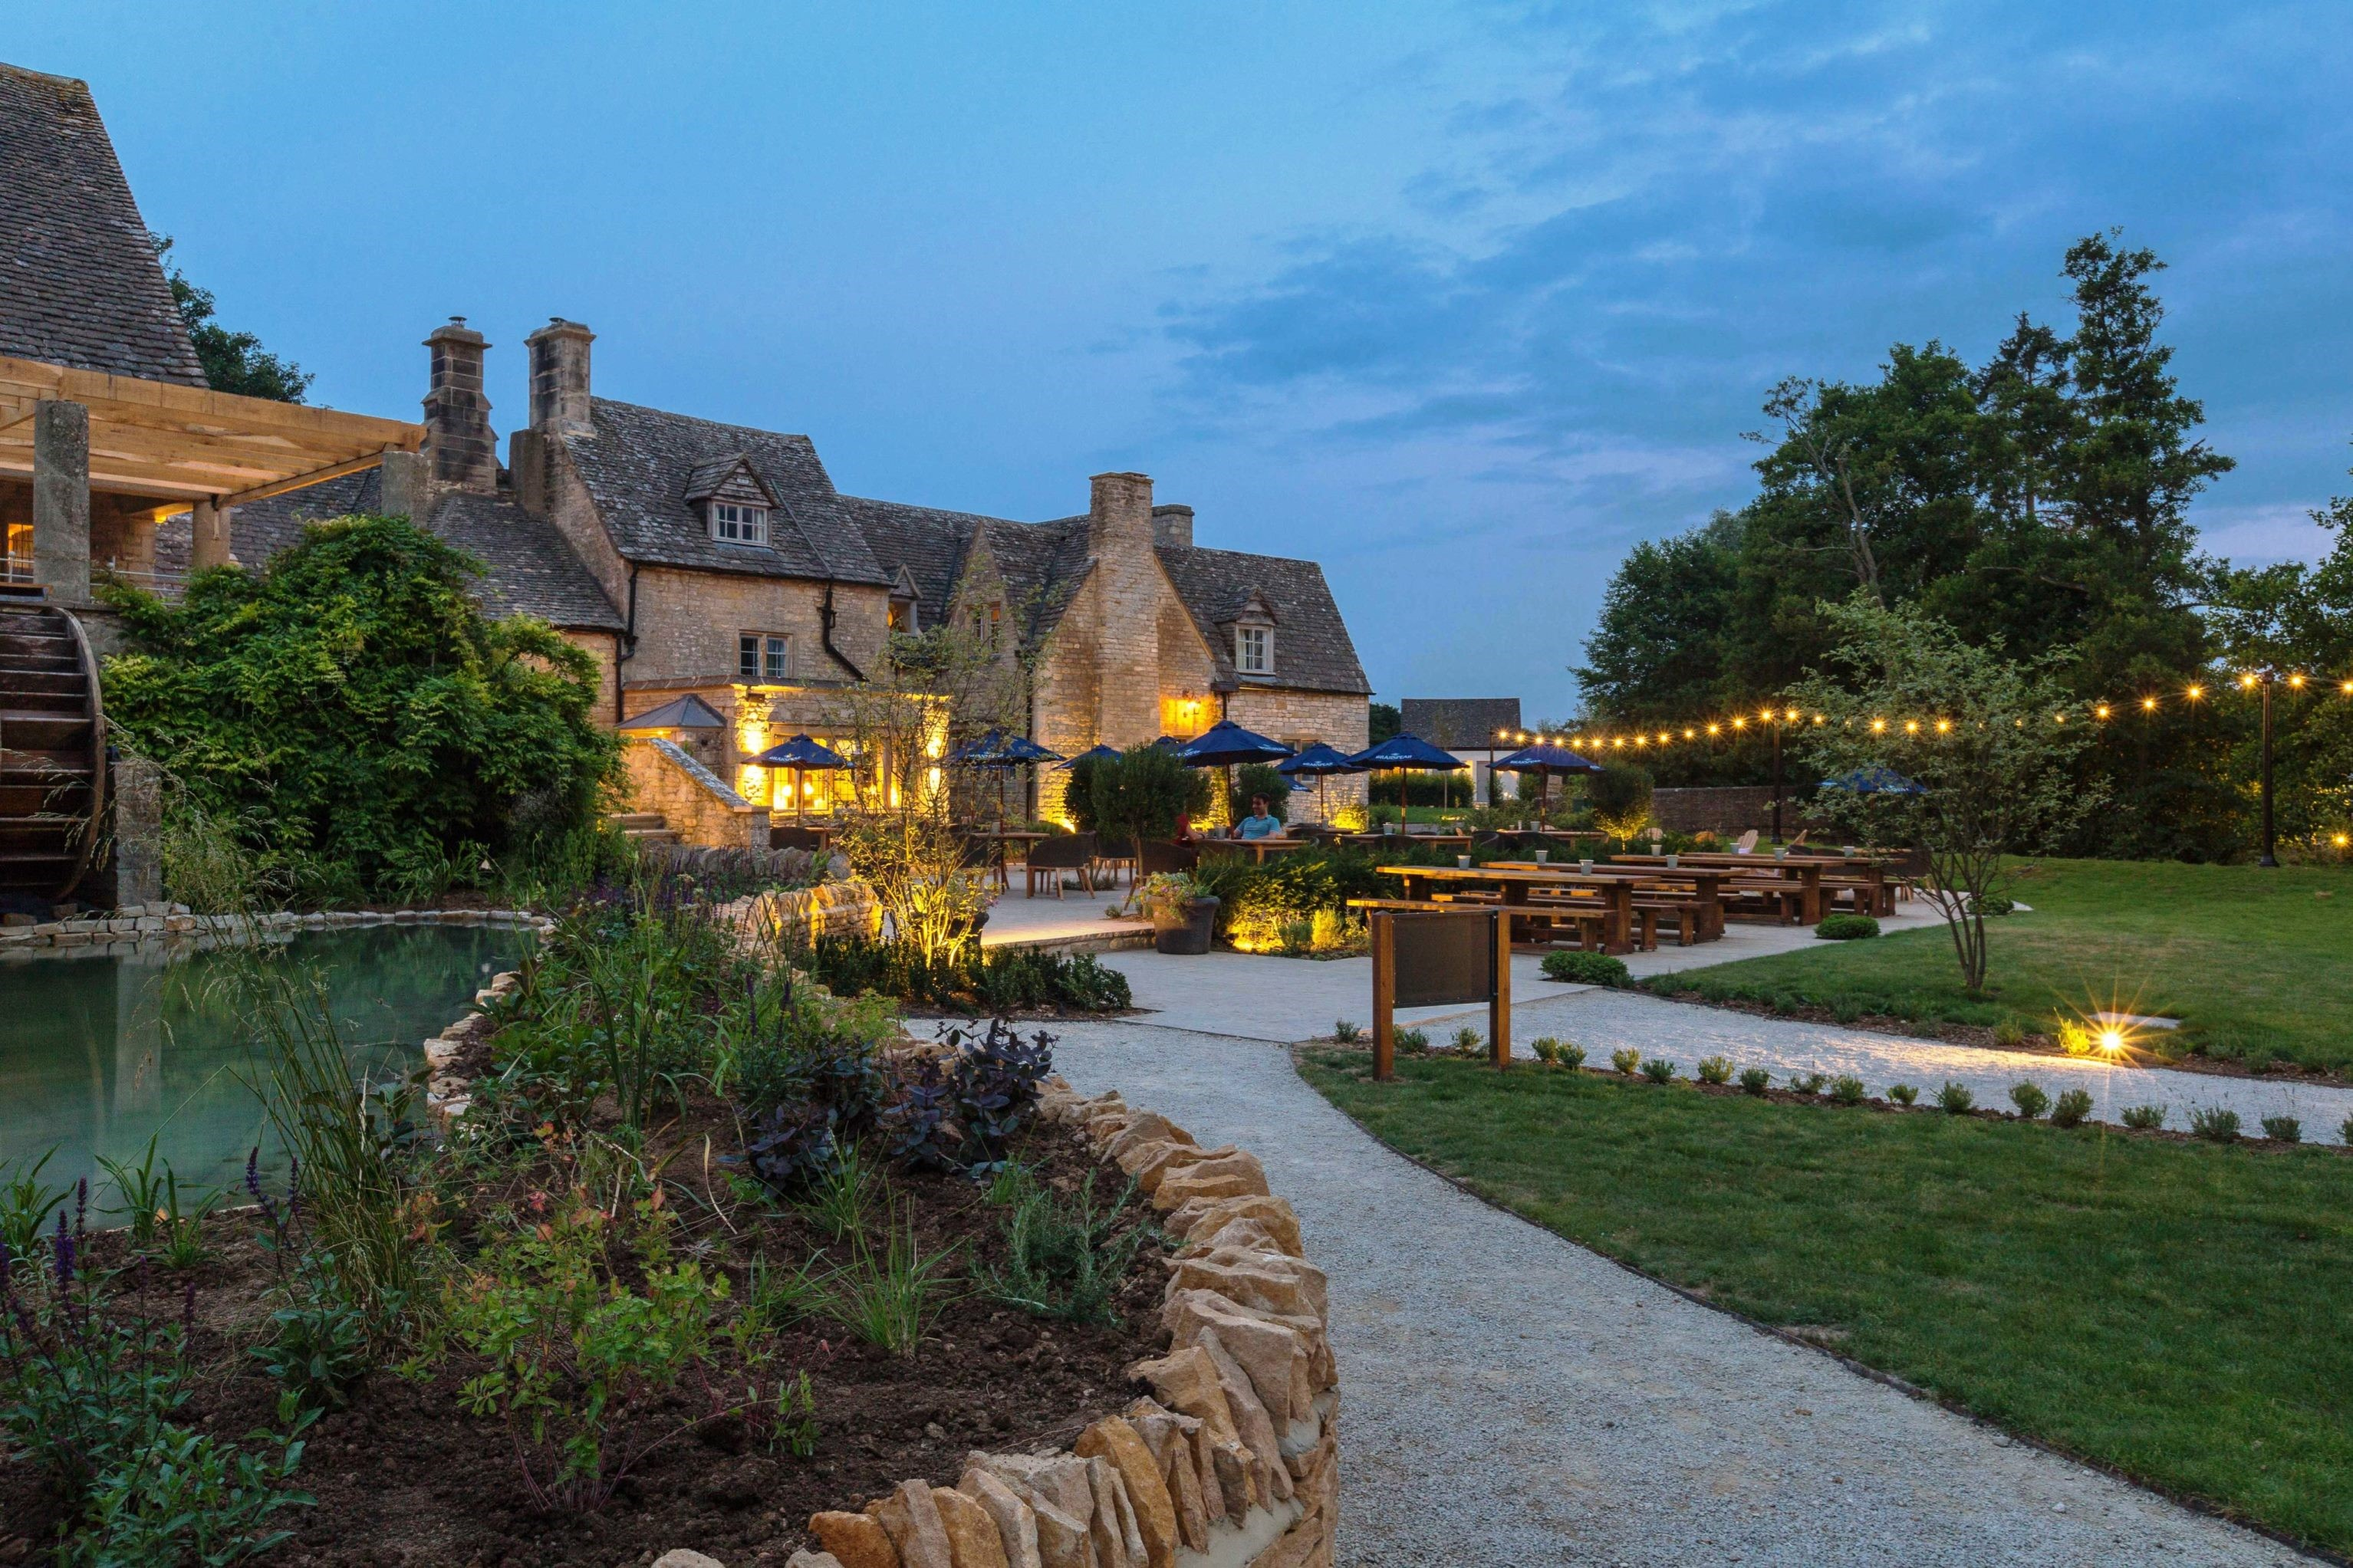 Shortlisted: The Frogmill at Shipton Oliffe